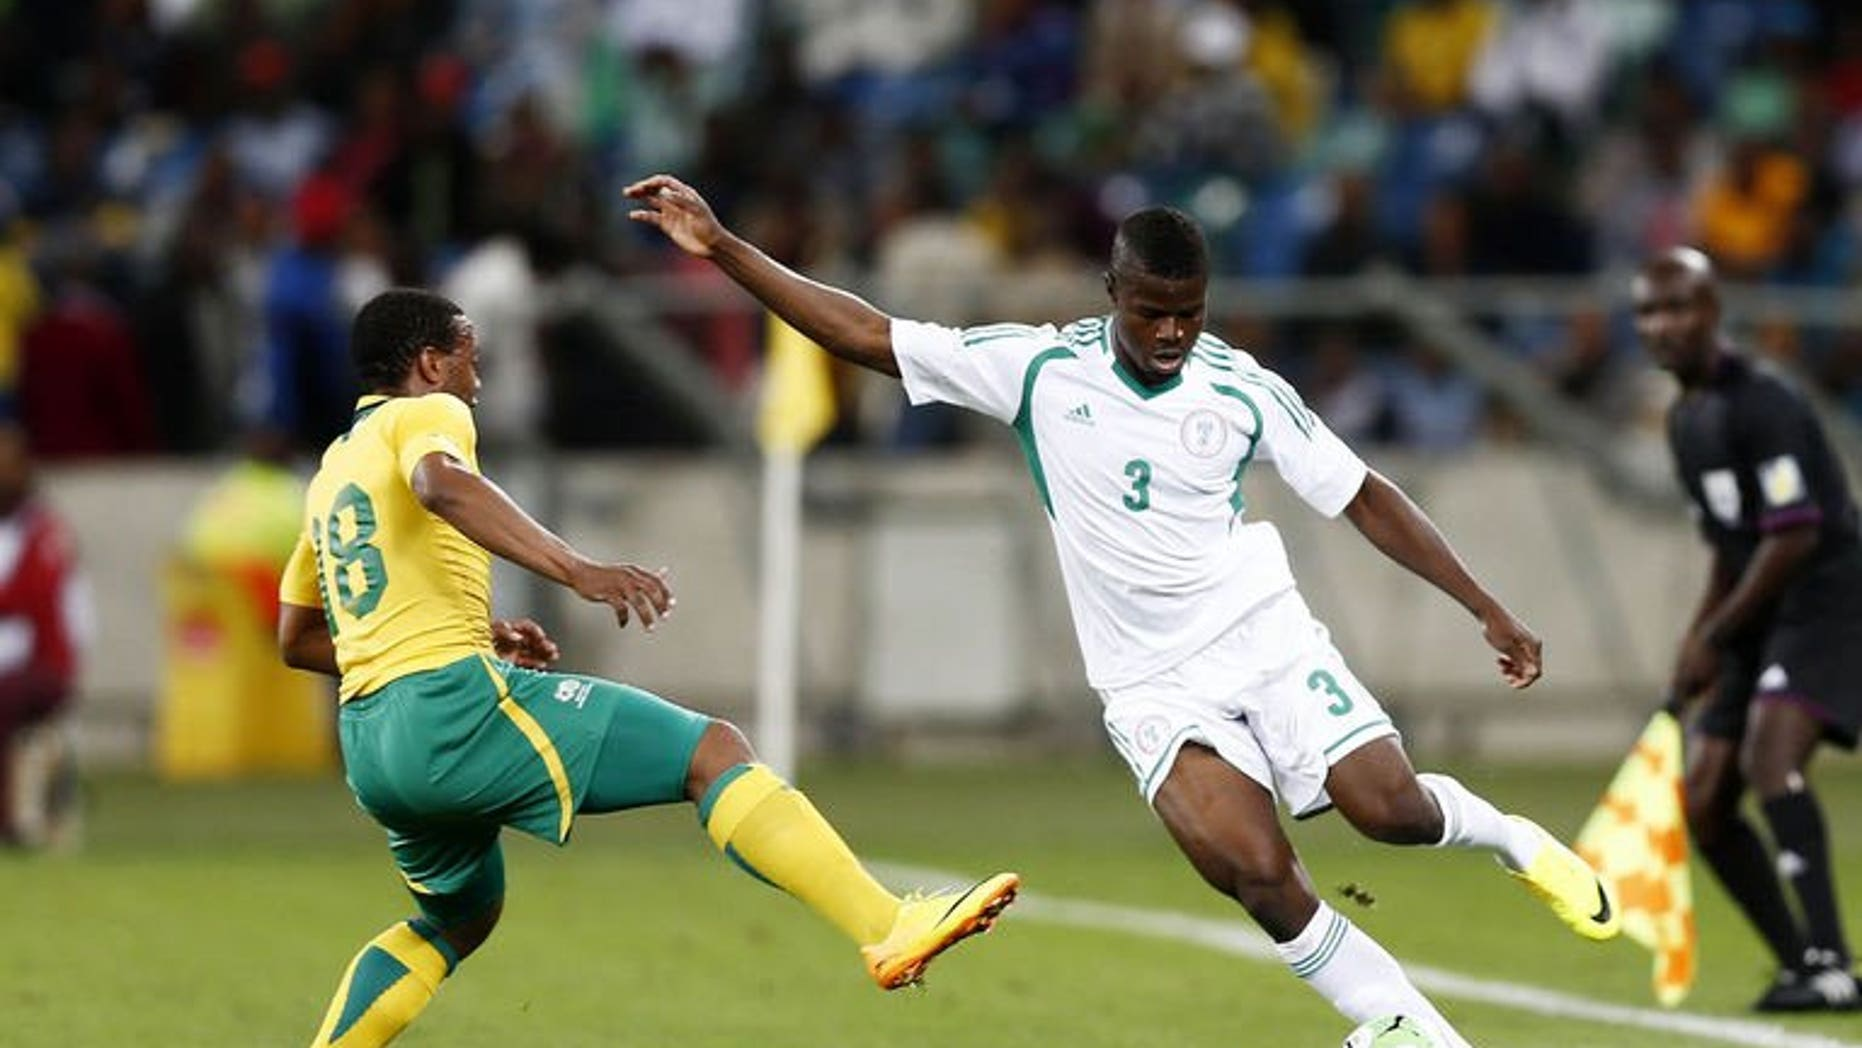 Nigeria's Elderson Echiejile (R) passes the ball away from South Africa's Thuso Phala during the 2013 Nelson Mandela football Challenge friendly match between South Africa and Nigeria at Moses Mabhida Stadium on August 14, 2013 in Durban, South Africa. Nigeria won 2-0.